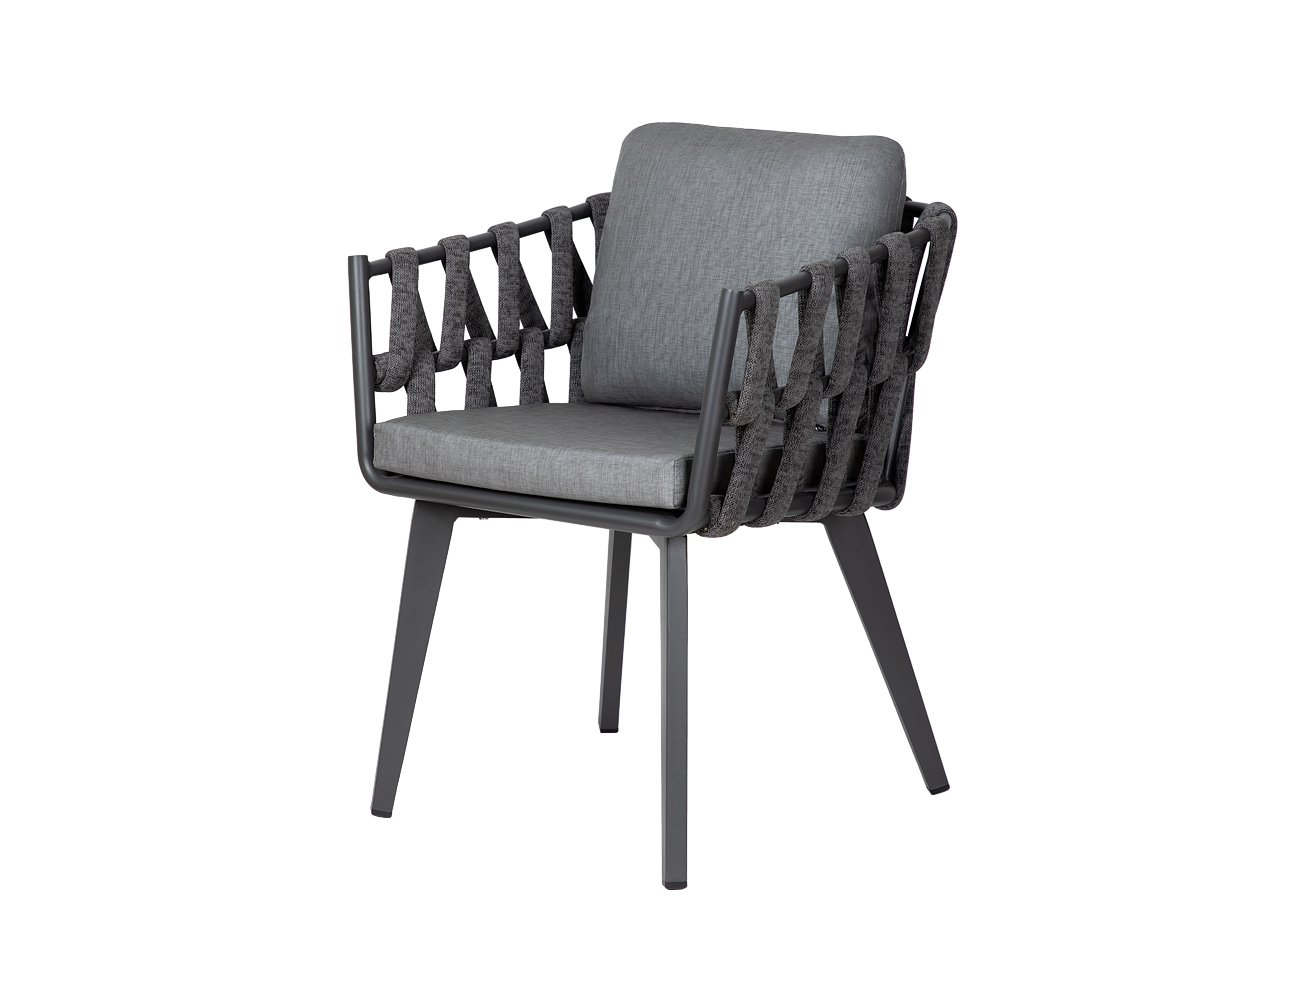 Fantail Aluminium & Rope Outdoor Dining Chair